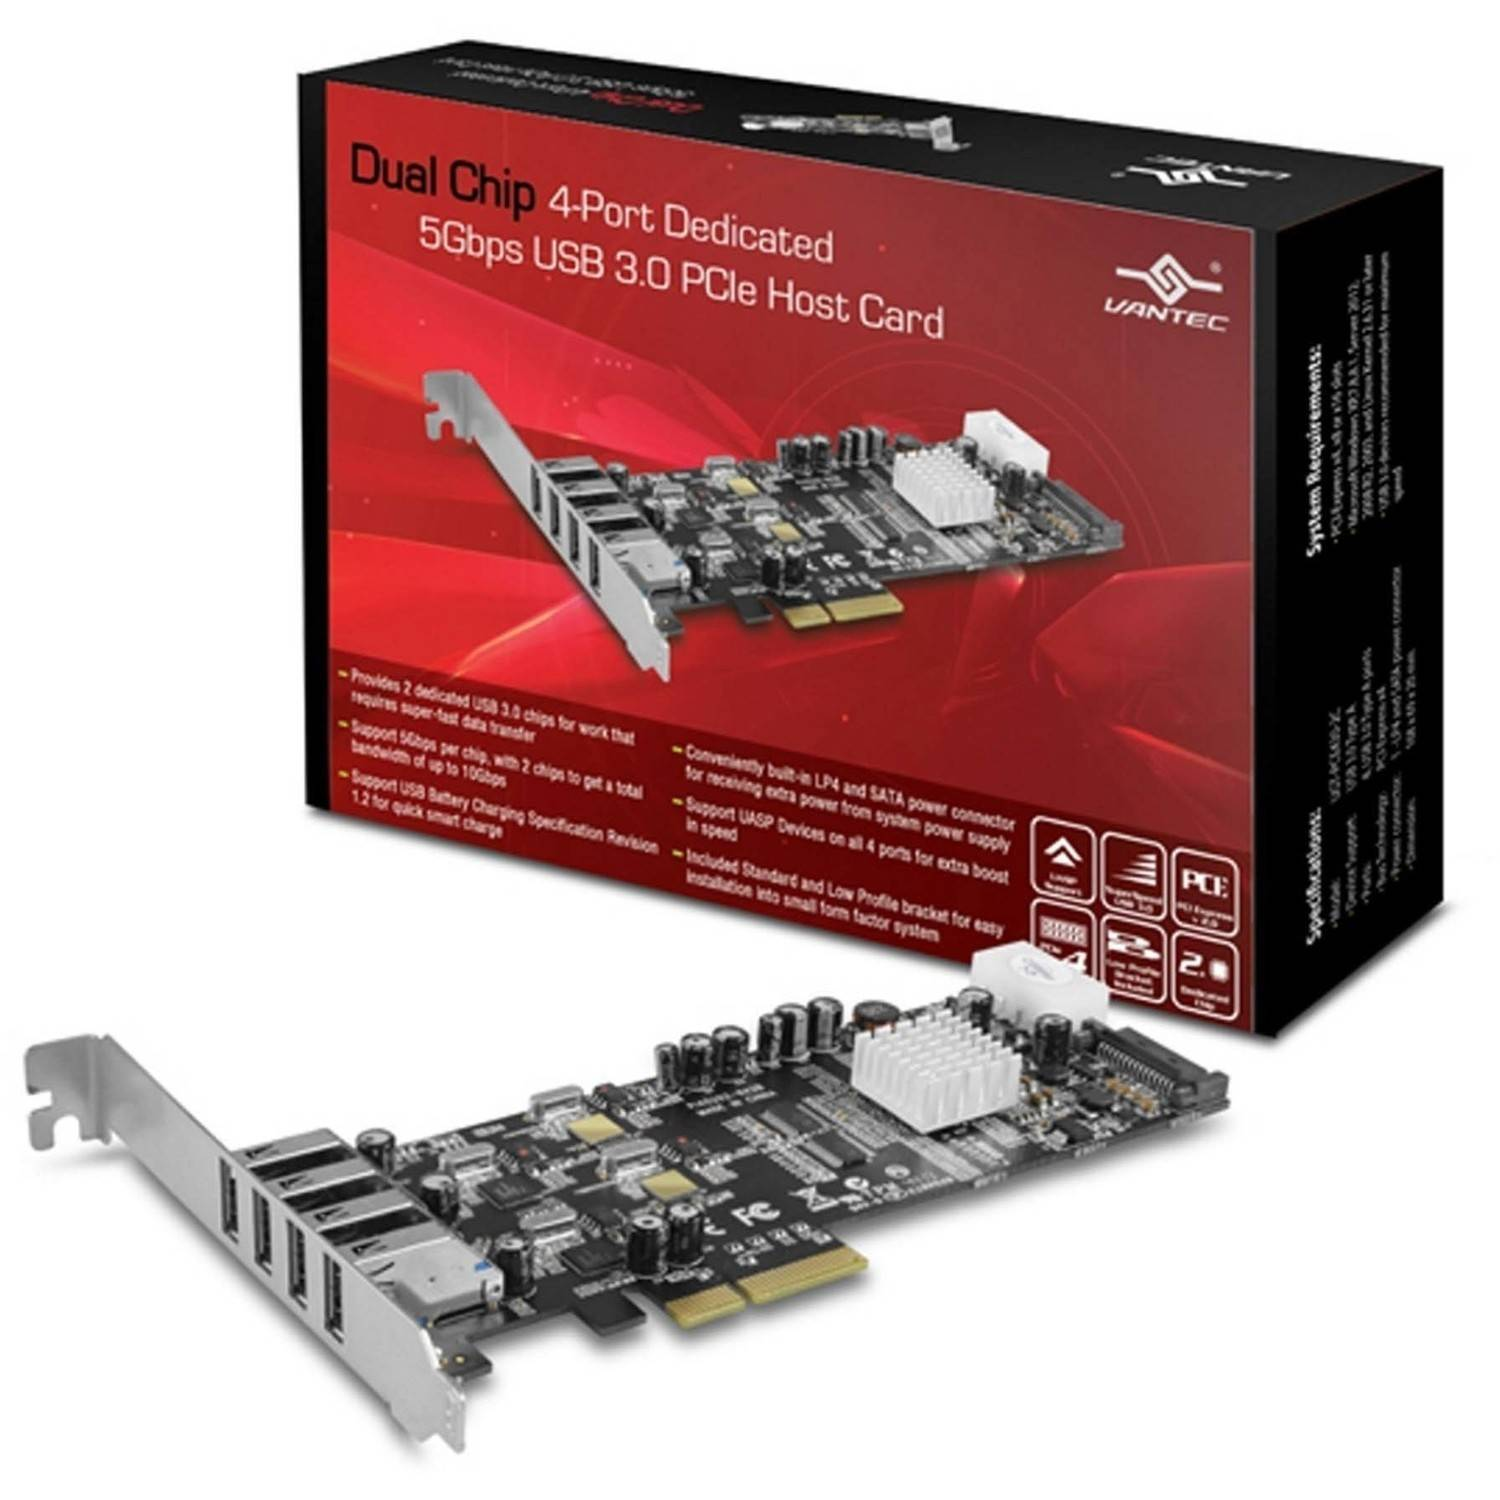 Vantec UGT-PCE430-2C Dual Chip 4-Port Dedicated 5GBps USB 3.0 PCIe Host Card, Silver